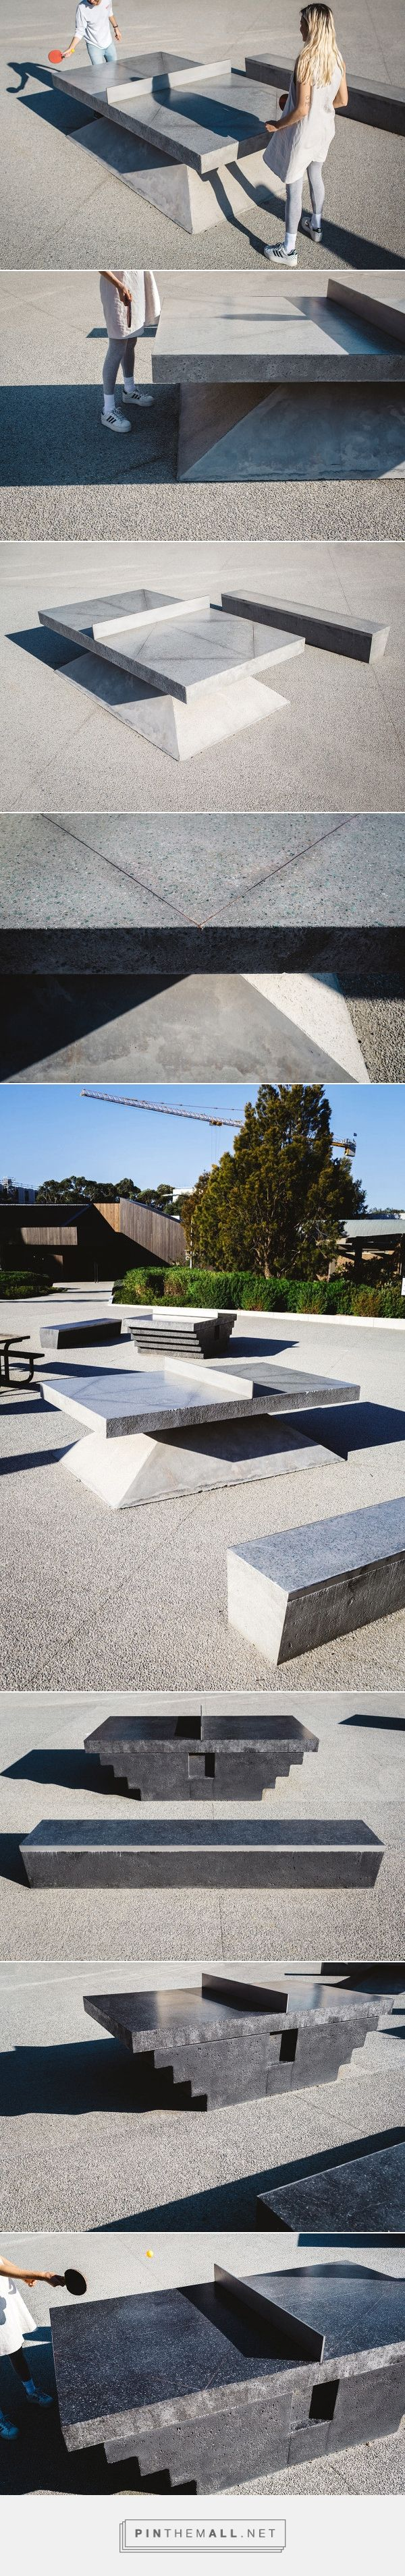 Monoliths: Concrete Ping Pong Tables & Benches - Design Milk - created via http://pinthemall.net